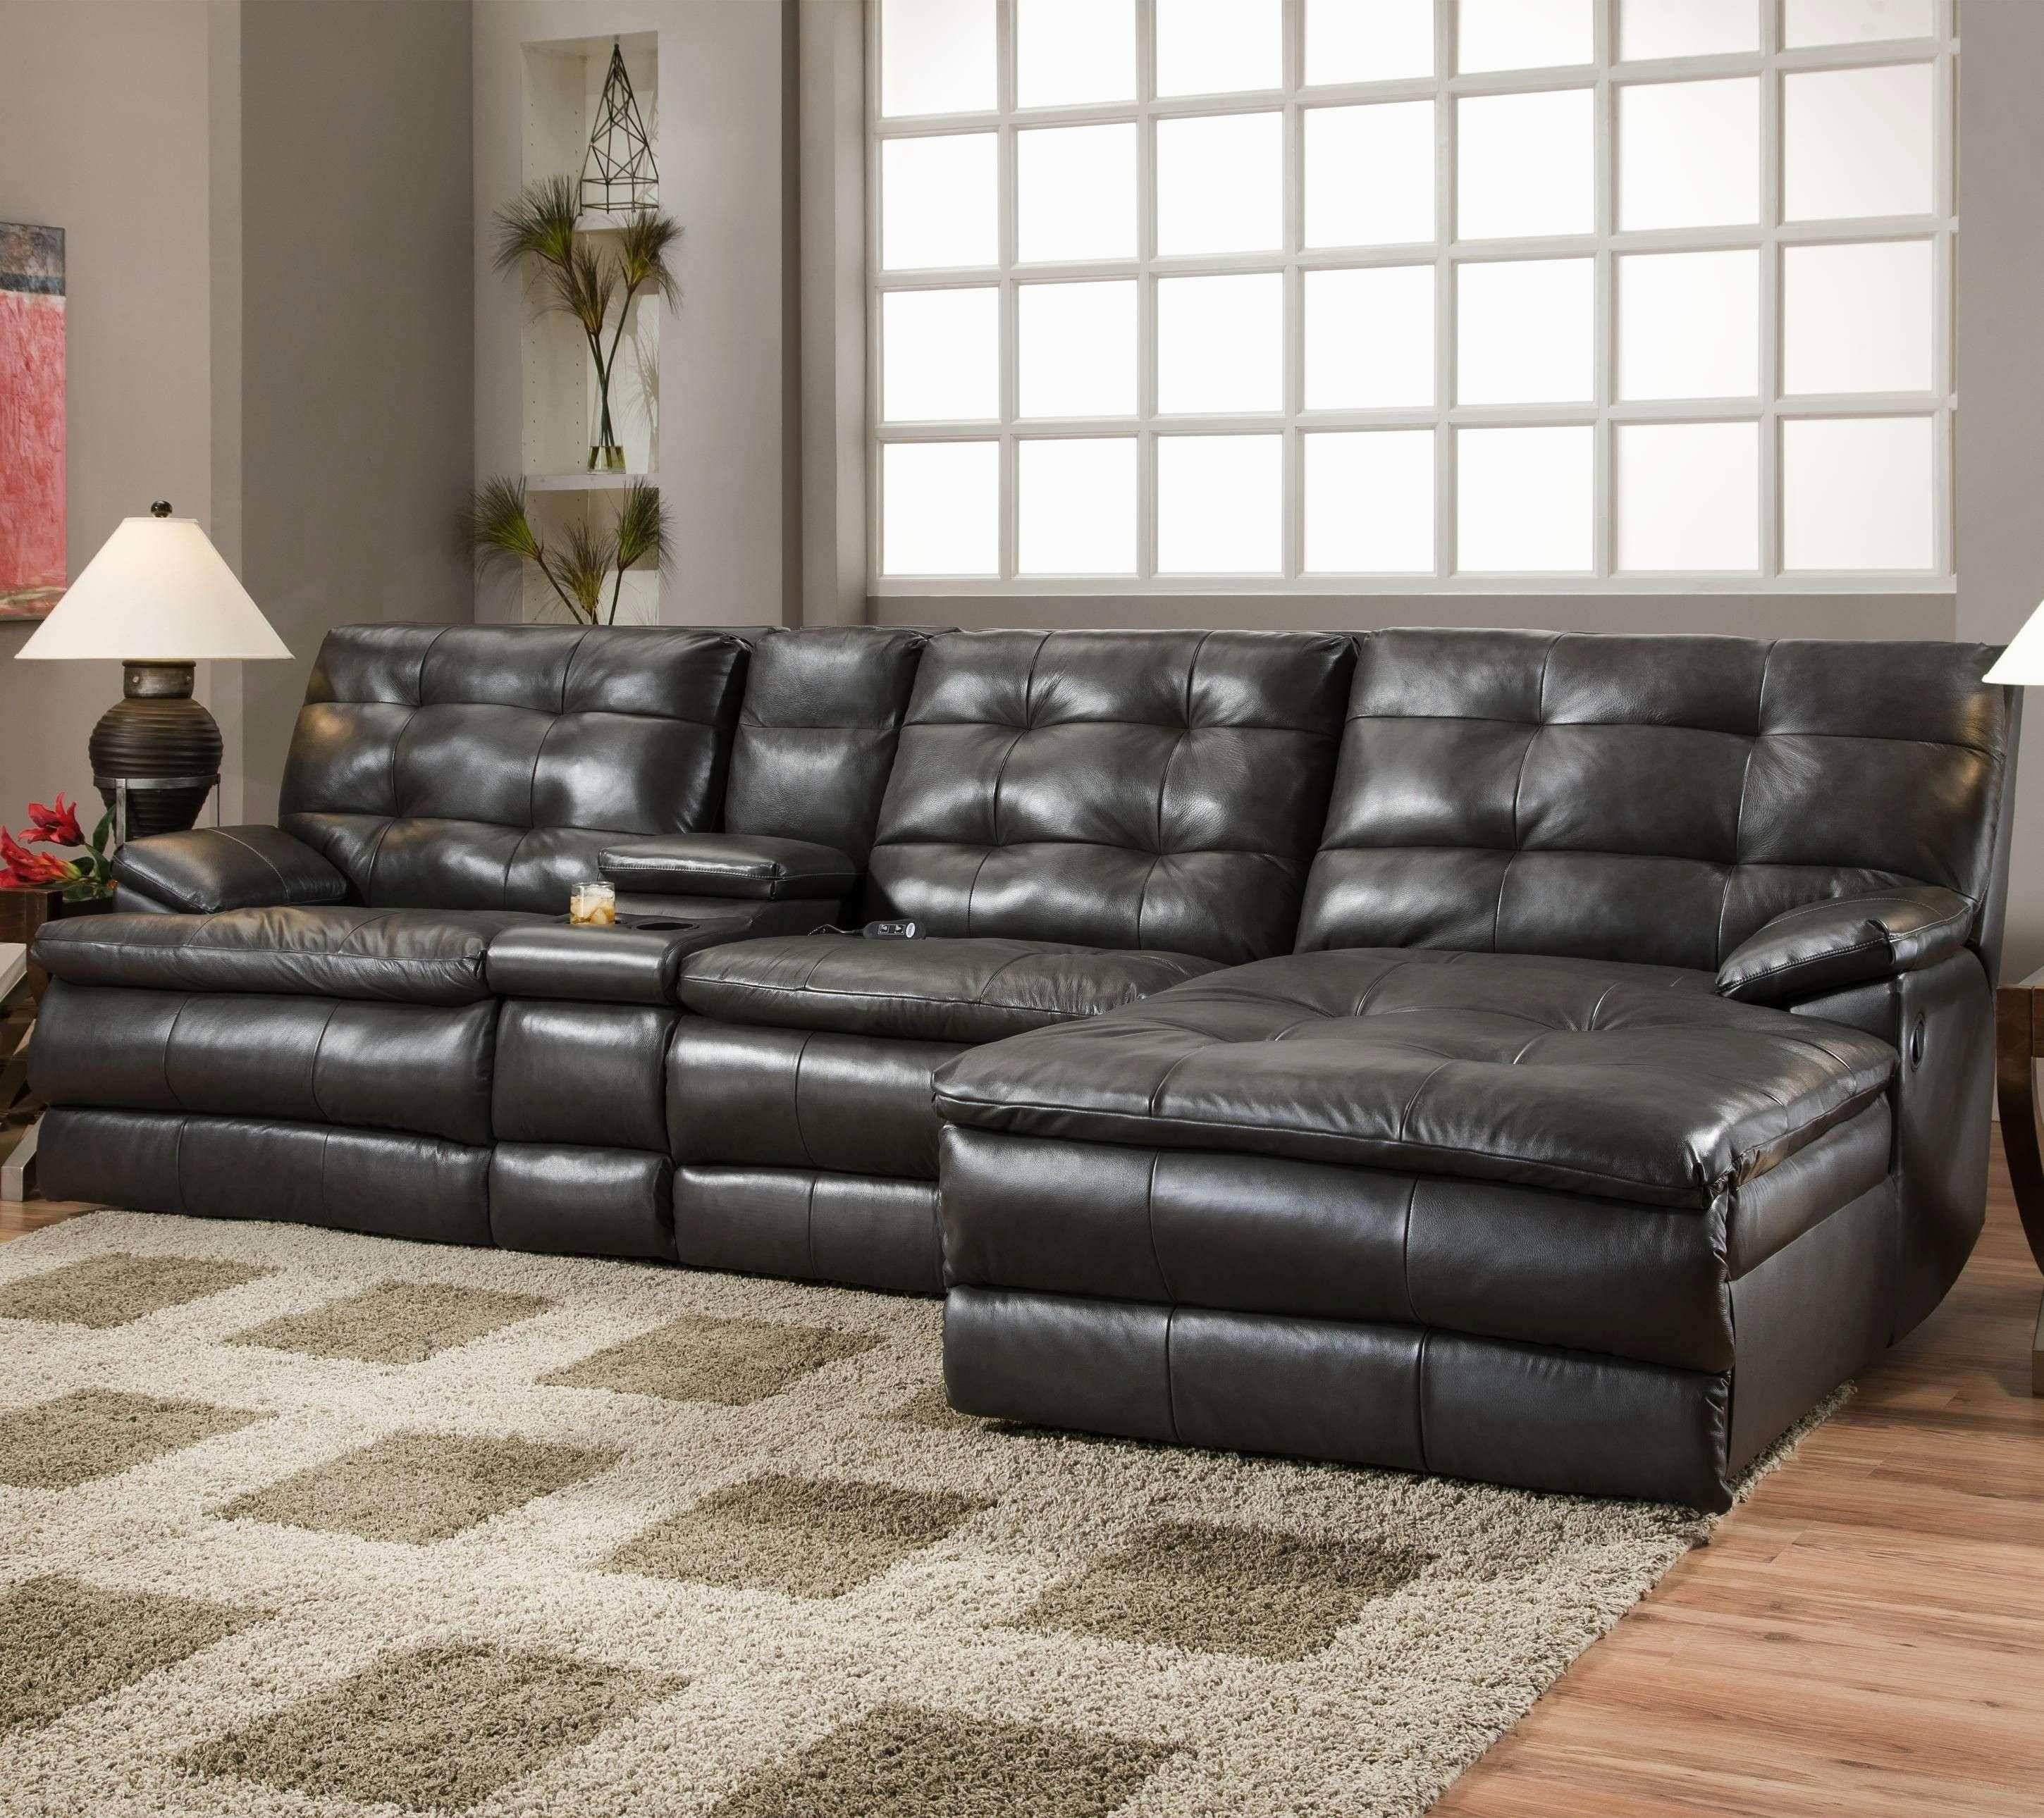 Living Room Wall Decor Awesome Home Decorating Shows Fresh sofa Fy